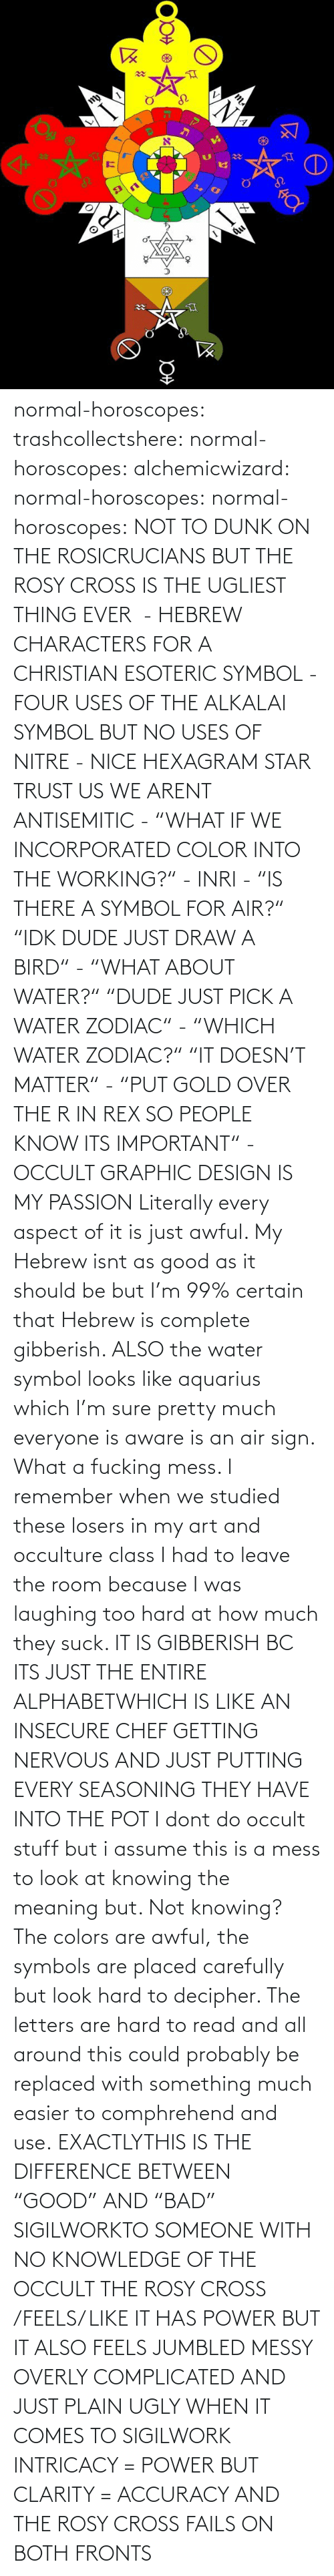 "Important: normal-horoscopes:  trashcollectshere: normal-horoscopes:   alchemicwizard:  normal-horoscopes:  normal-horoscopes: NOT TO DUNK ON THE ROSICRUCIANS BUT THE ROSY CROSS IS THE UGLIEST THING EVER  - HEBREW CHARACTERS FOR A CHRISTIAN ESOTERIC SYMBOL - FOUR USES OF THE ALKALAI SYMBOL BUT NO USES OF NITRE - NICE HEXAGRAM STAR TRUST US WE ARENT ANTISEMITIC - ""WHAT IF WE INCORPORATED COLOR INTO THE WORKING?"" - INRI - ""IS THERE A SYMBOL FOR AIR?"" ""IDK DUDE JUST DRAW A BIRD"" - ""WHAT ABOUT WATER?"" ""DUDE JUST PICK A WATER ZODIAC"" - ""WHICH WATER ZODIAC?"" ""IT DOESN'T MATTER"" - ""PUT GOLD OVER THE R IN REX SO PEOPLE KNOW ITS IMPORTANT"" - OCCULT GRAPHIC DESIGN IS MY PASSION  Literally every aspect of it is just awful. My Hebrew isnt as good as it should be but I'm 99% certain that Hebrew is complete gibberish.  ALSO the water symbol looks like aquarius which I'm sure pretty much everyone is aware is an air sign. What a fucking mess.  I remember when we studied these losers in my art and occulture class I had to leave the room because I was laughing too hard at how much they suck.   IT IS GIBBERISH BC ITS JUST THE ENTIRE ALPHABETWHICH IS LIKE AN INSECURE CHEF GETTING NERVOUS AND JUST PUTTING EVERY SEASONING THEY HAVE INTO THE POT     I dont do occult stuff but i assume this is a mess to look at knowing the meaning but. Not knowing? The colors are awful, the symbols are placed carefully but look hard to decipher. The letters are hard to read and all around this could probably be replaced with something much easier to comphrehend and use.  EXACTLYTHIS IS THE DIFFERENCE BETWEEN ""GOOD"" AND ""BAD"" SIGILWORKTO SOMEONE WITH NO KNOWLEDGE OF THE OCCULT THE ROSY CROSS /FEELS/ LIKE IT HAS POWER BUT IT ALSO FEELS JUMBLED MESSY OVERLY COMPLICATED AND JUST PLAIN UGLY WHEN IT COMES TO SIGILWORK INTRICACY = POWER BUT CLARITY = ACCURACY AND THE ROSY CROSS FAILS ON BOTH FRONTS"